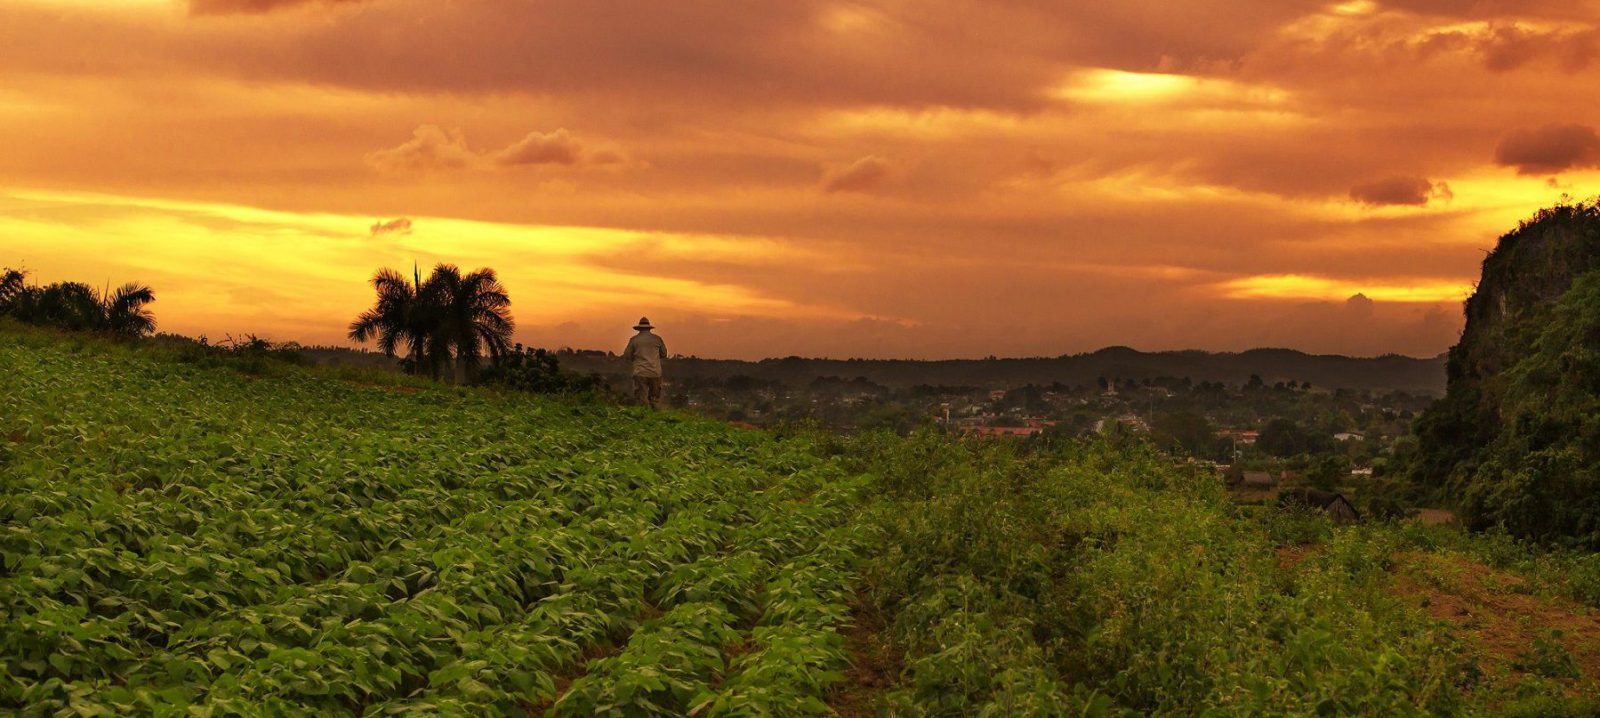 Sunset at Tobacco Farm in Vinales